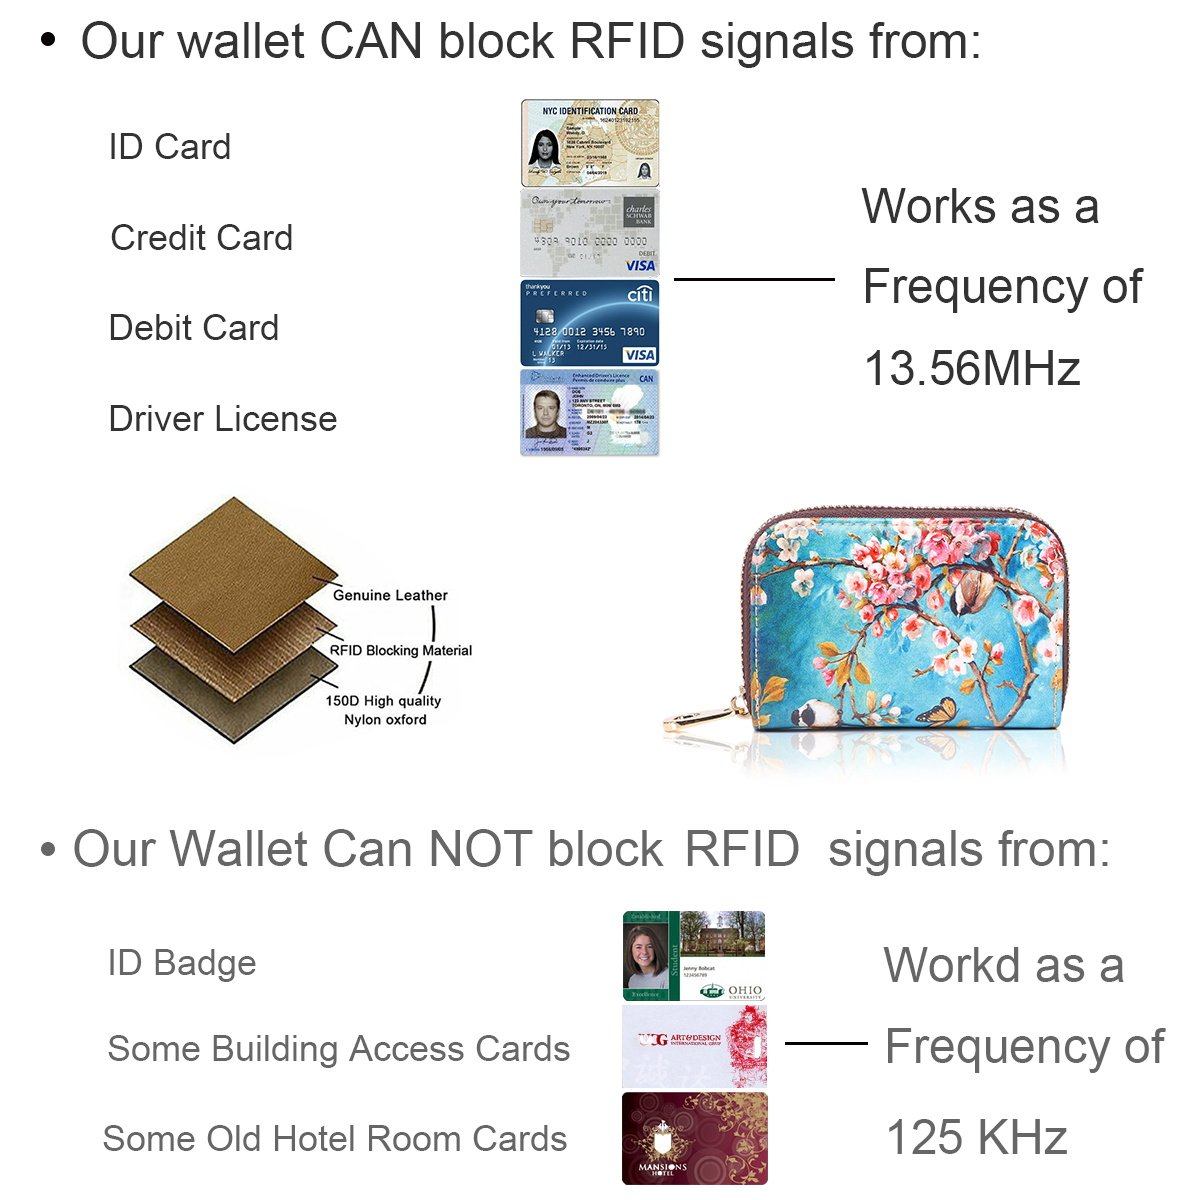 APHISON RFID Credit Card Holder Wallets for Women Leather Cartoon Patterns Zipper Card Case for Ladies Girls/Gift Box 010 by APHISON (Image #8)